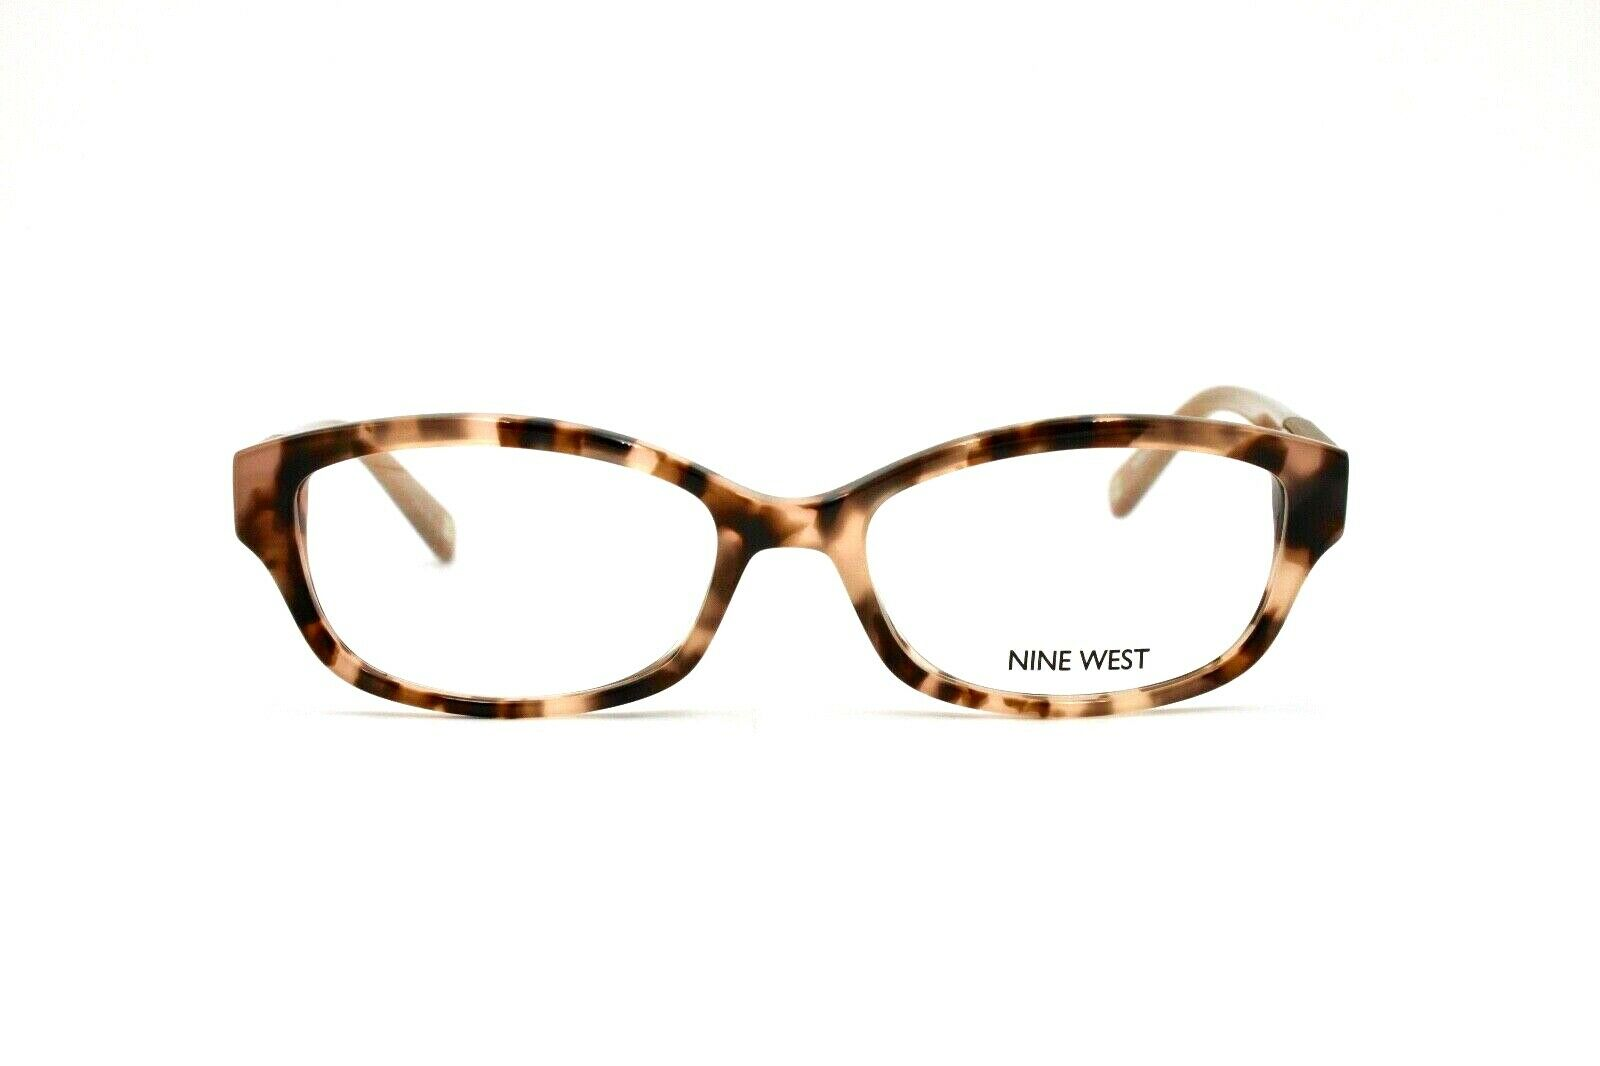 Nine West Sunglass NW5072 52 17 135 674 - Mydesigneroptic